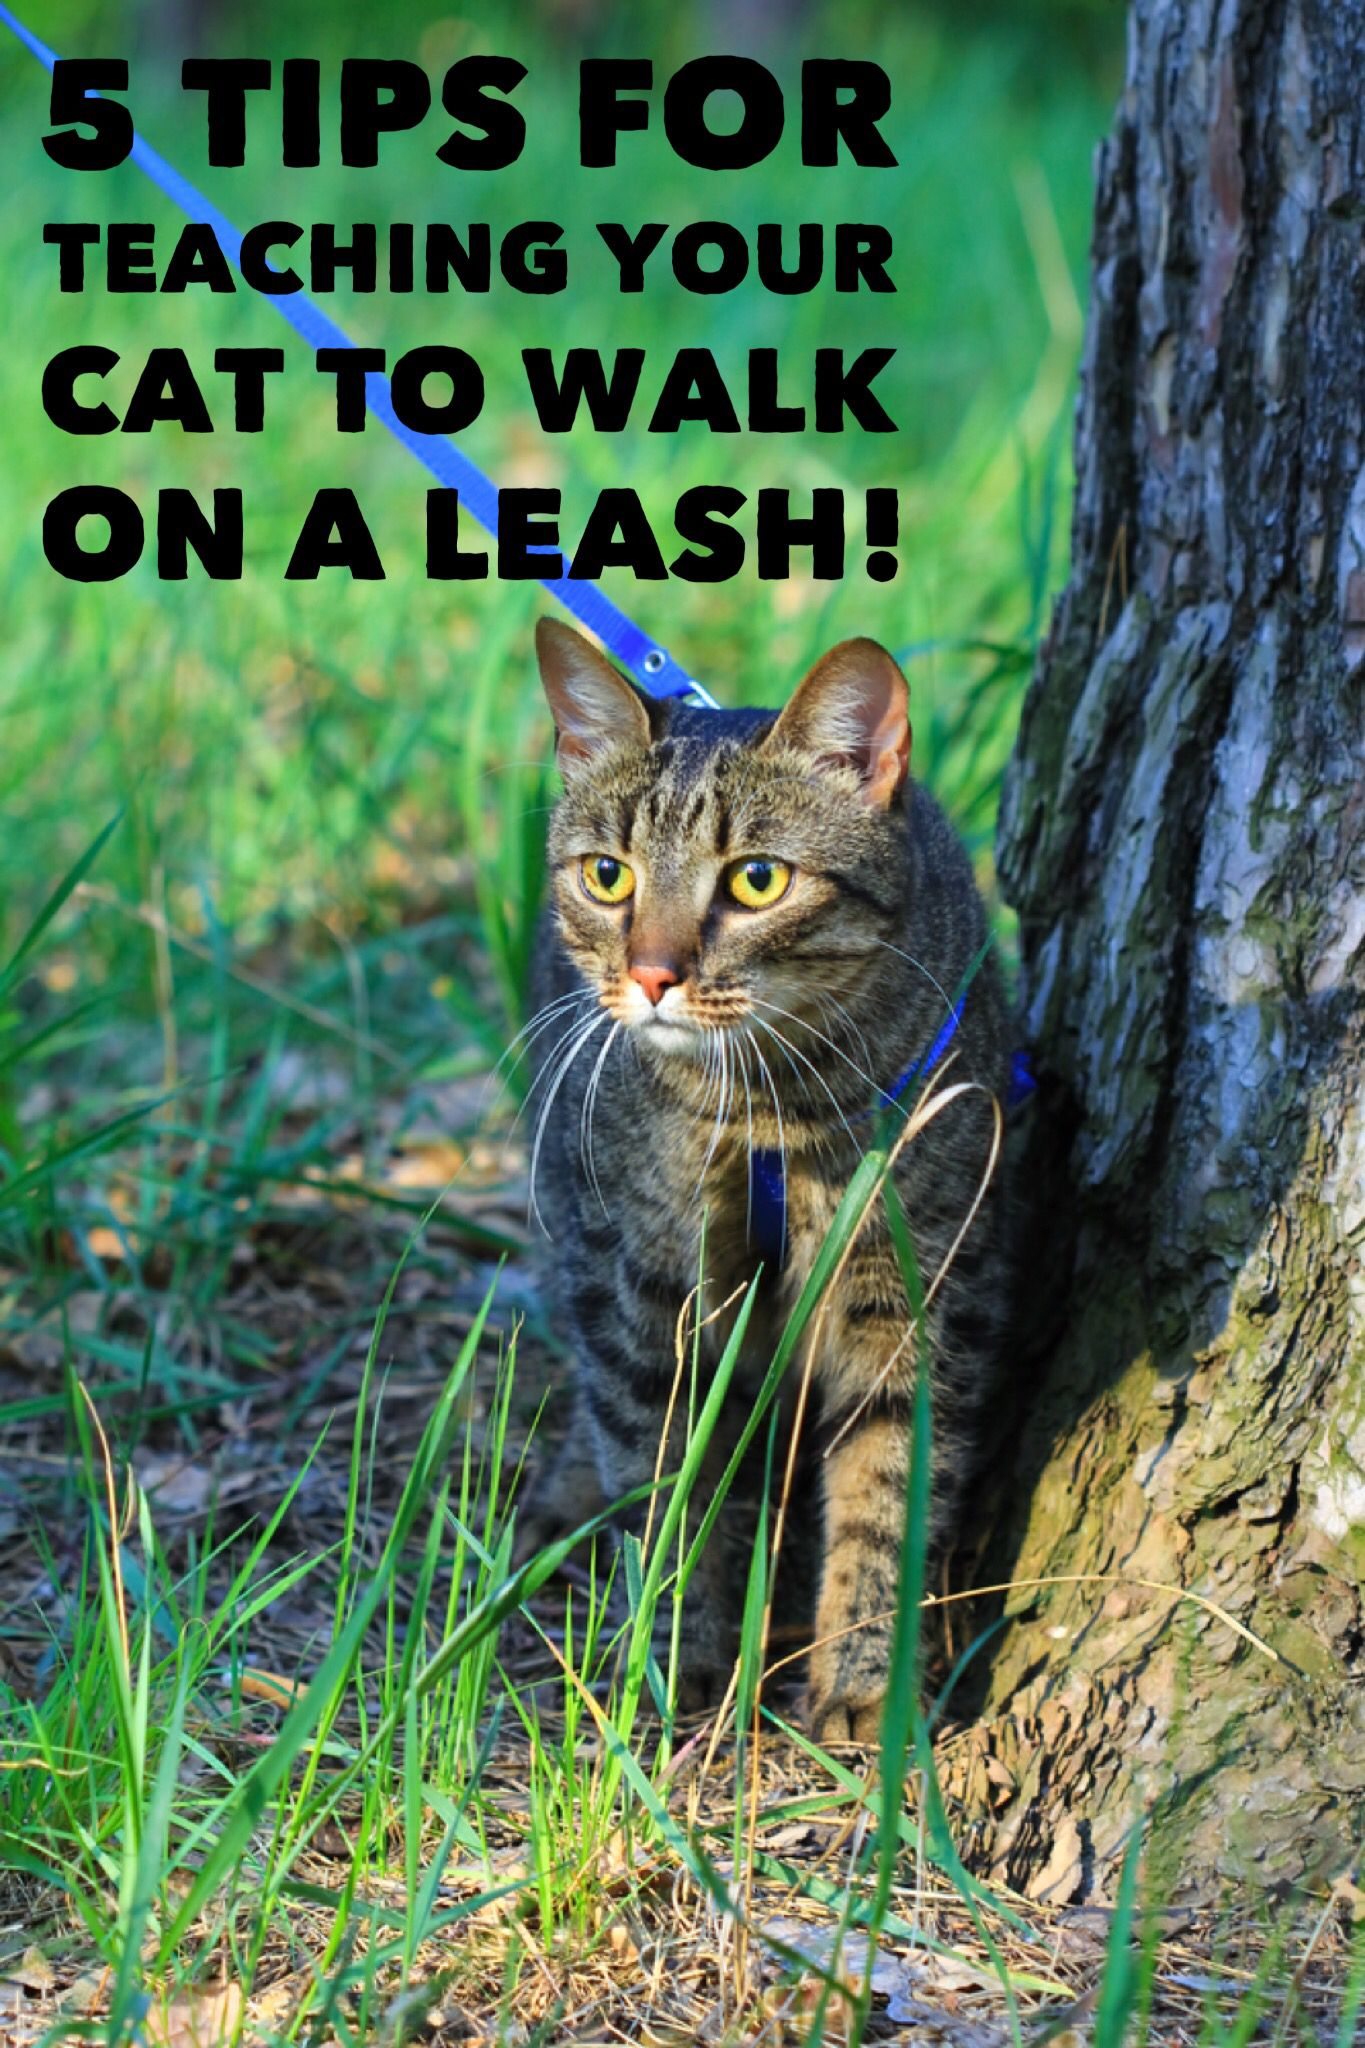 Think you can't teach your cat to walk on a leash? Think